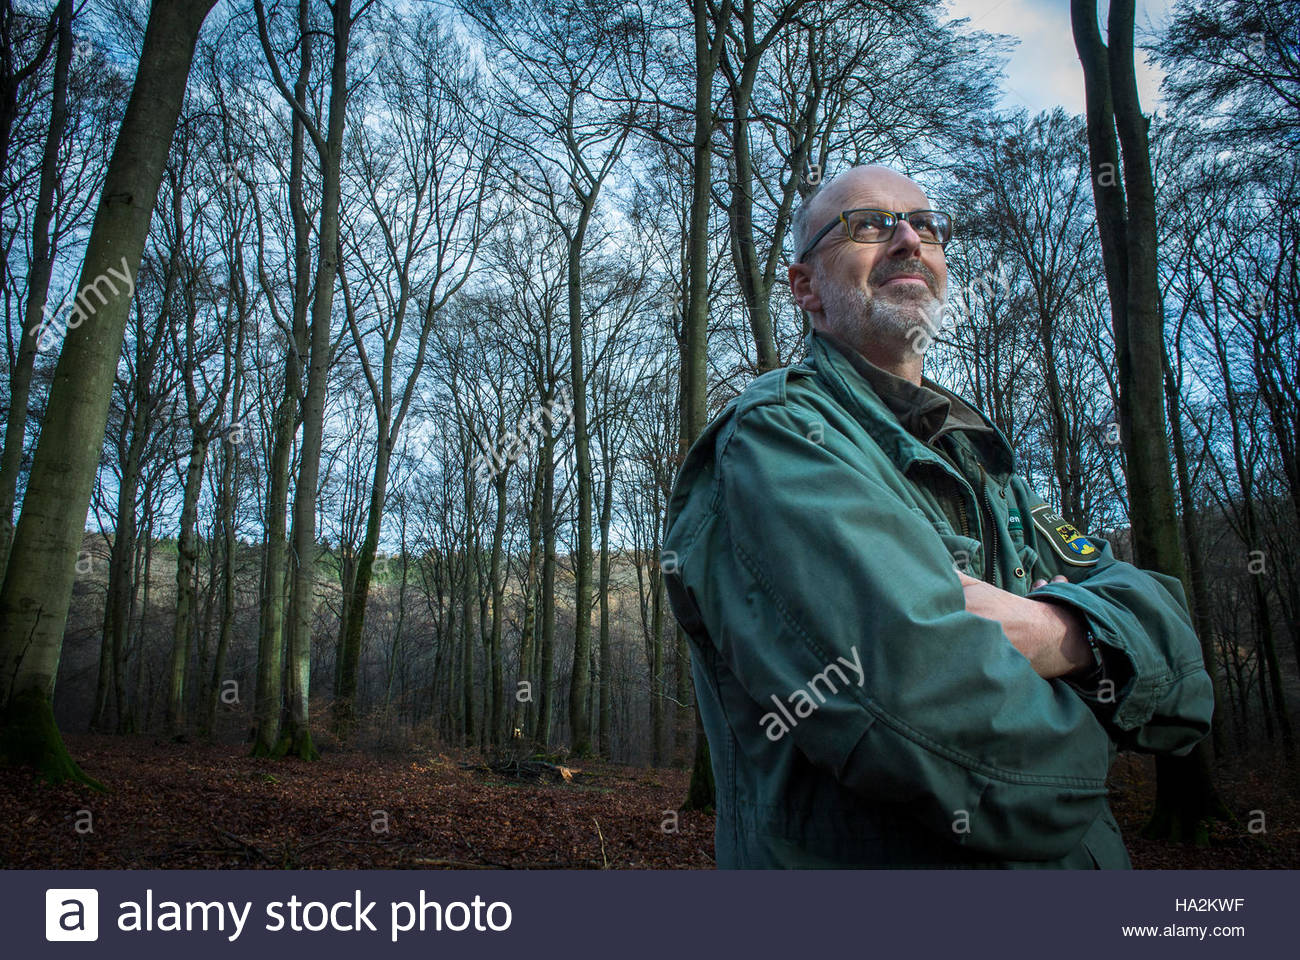 Author & Forester Peter Wohlleben in the 4000 year old beech forest he manages for the community of Hümmel, - Stock Image